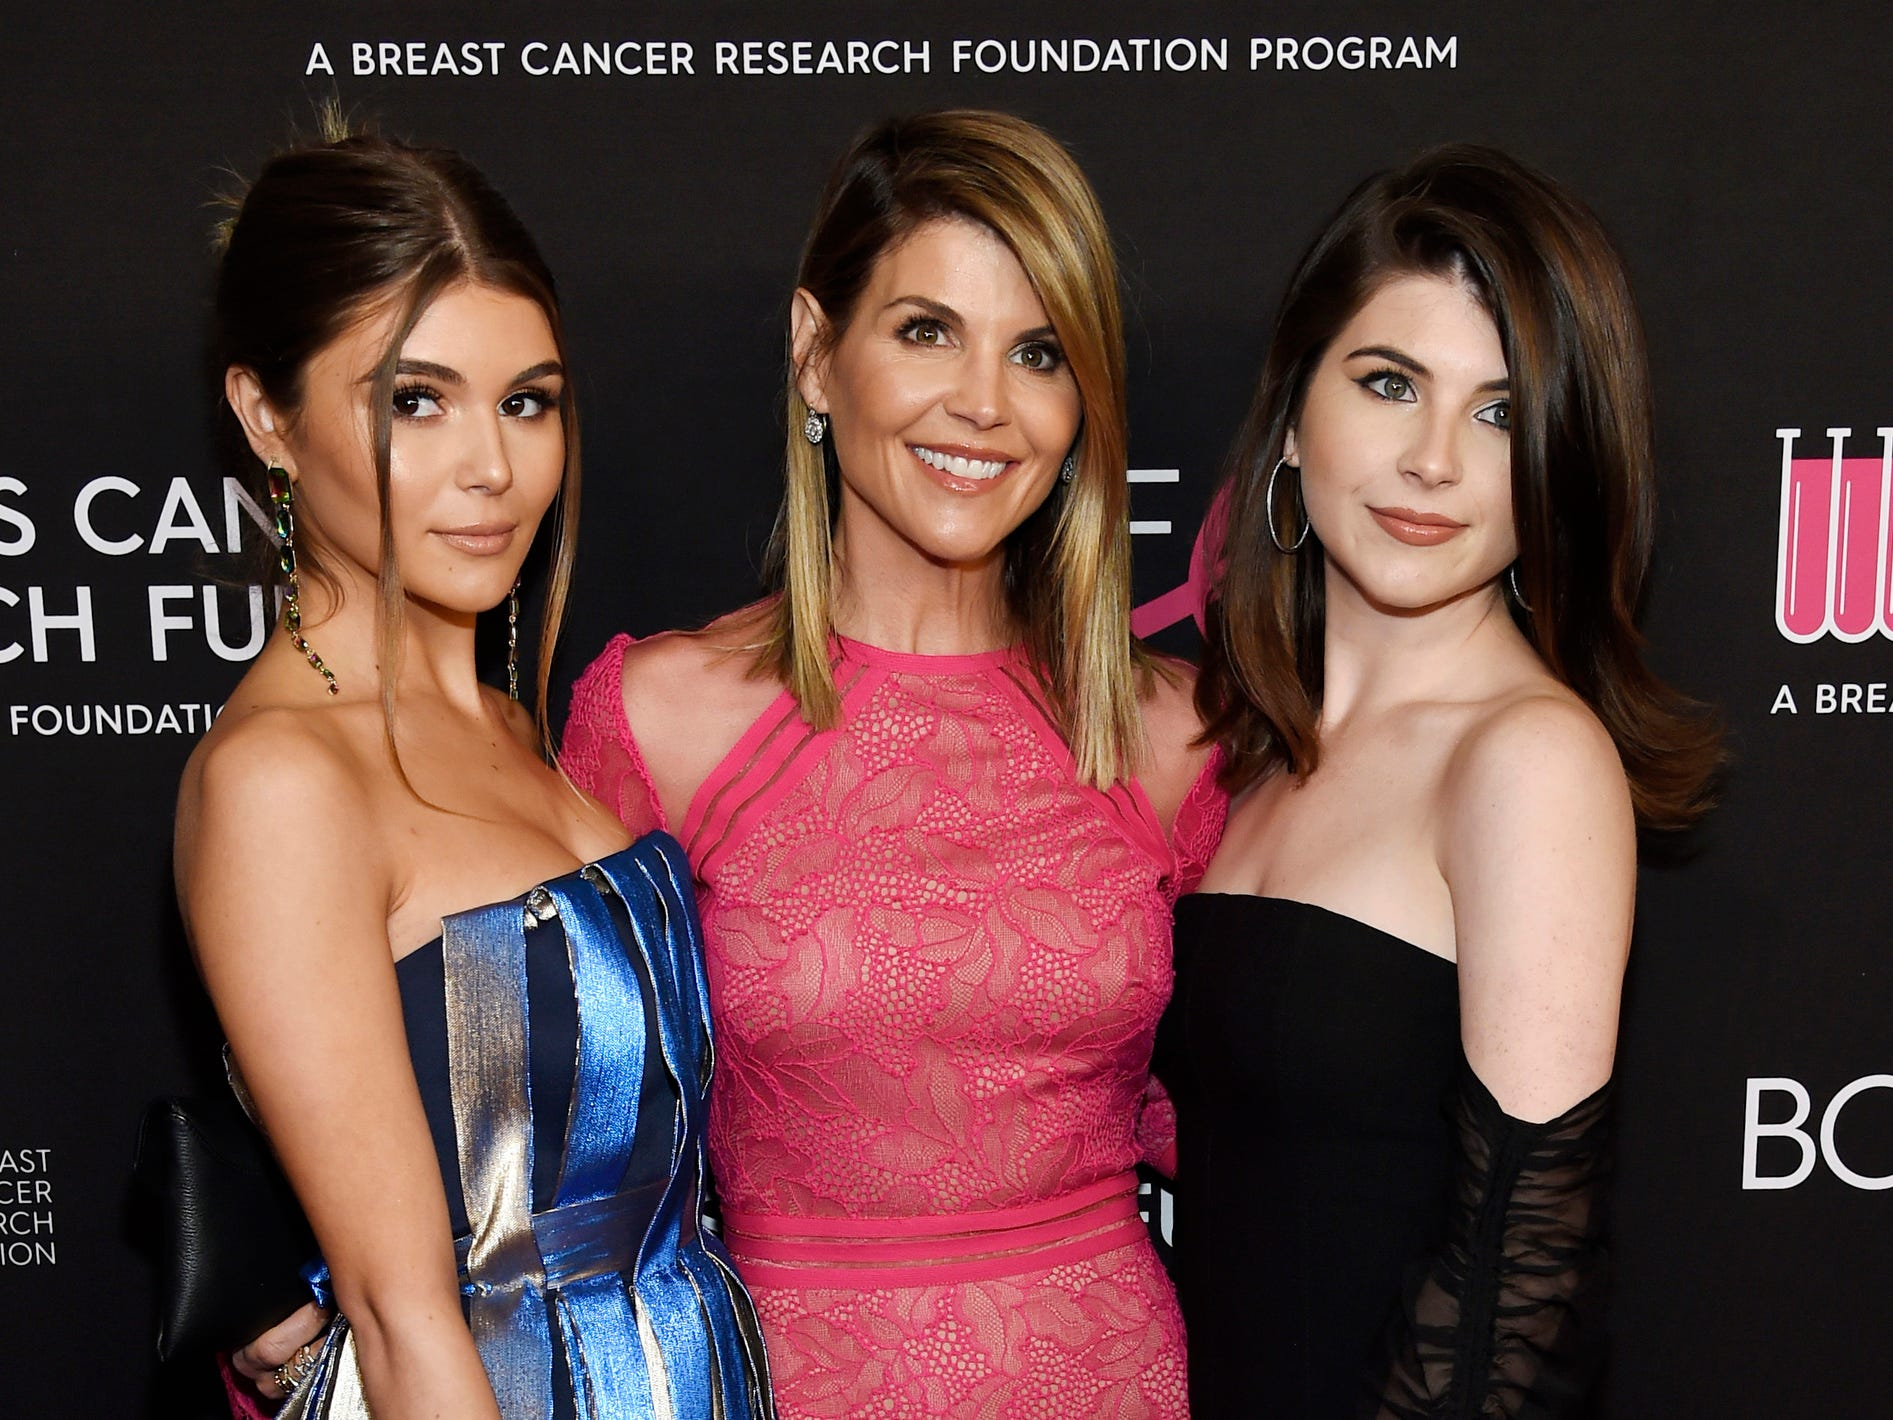 """Lori Loughlin, center, with daughters Olivia Jade Giannulli, left, and Isabella Rose Giannulli at the 2019 """"An Unforgettable Evening"""" in Beverly Hills, Calif. on Feb. 28, 2019."""